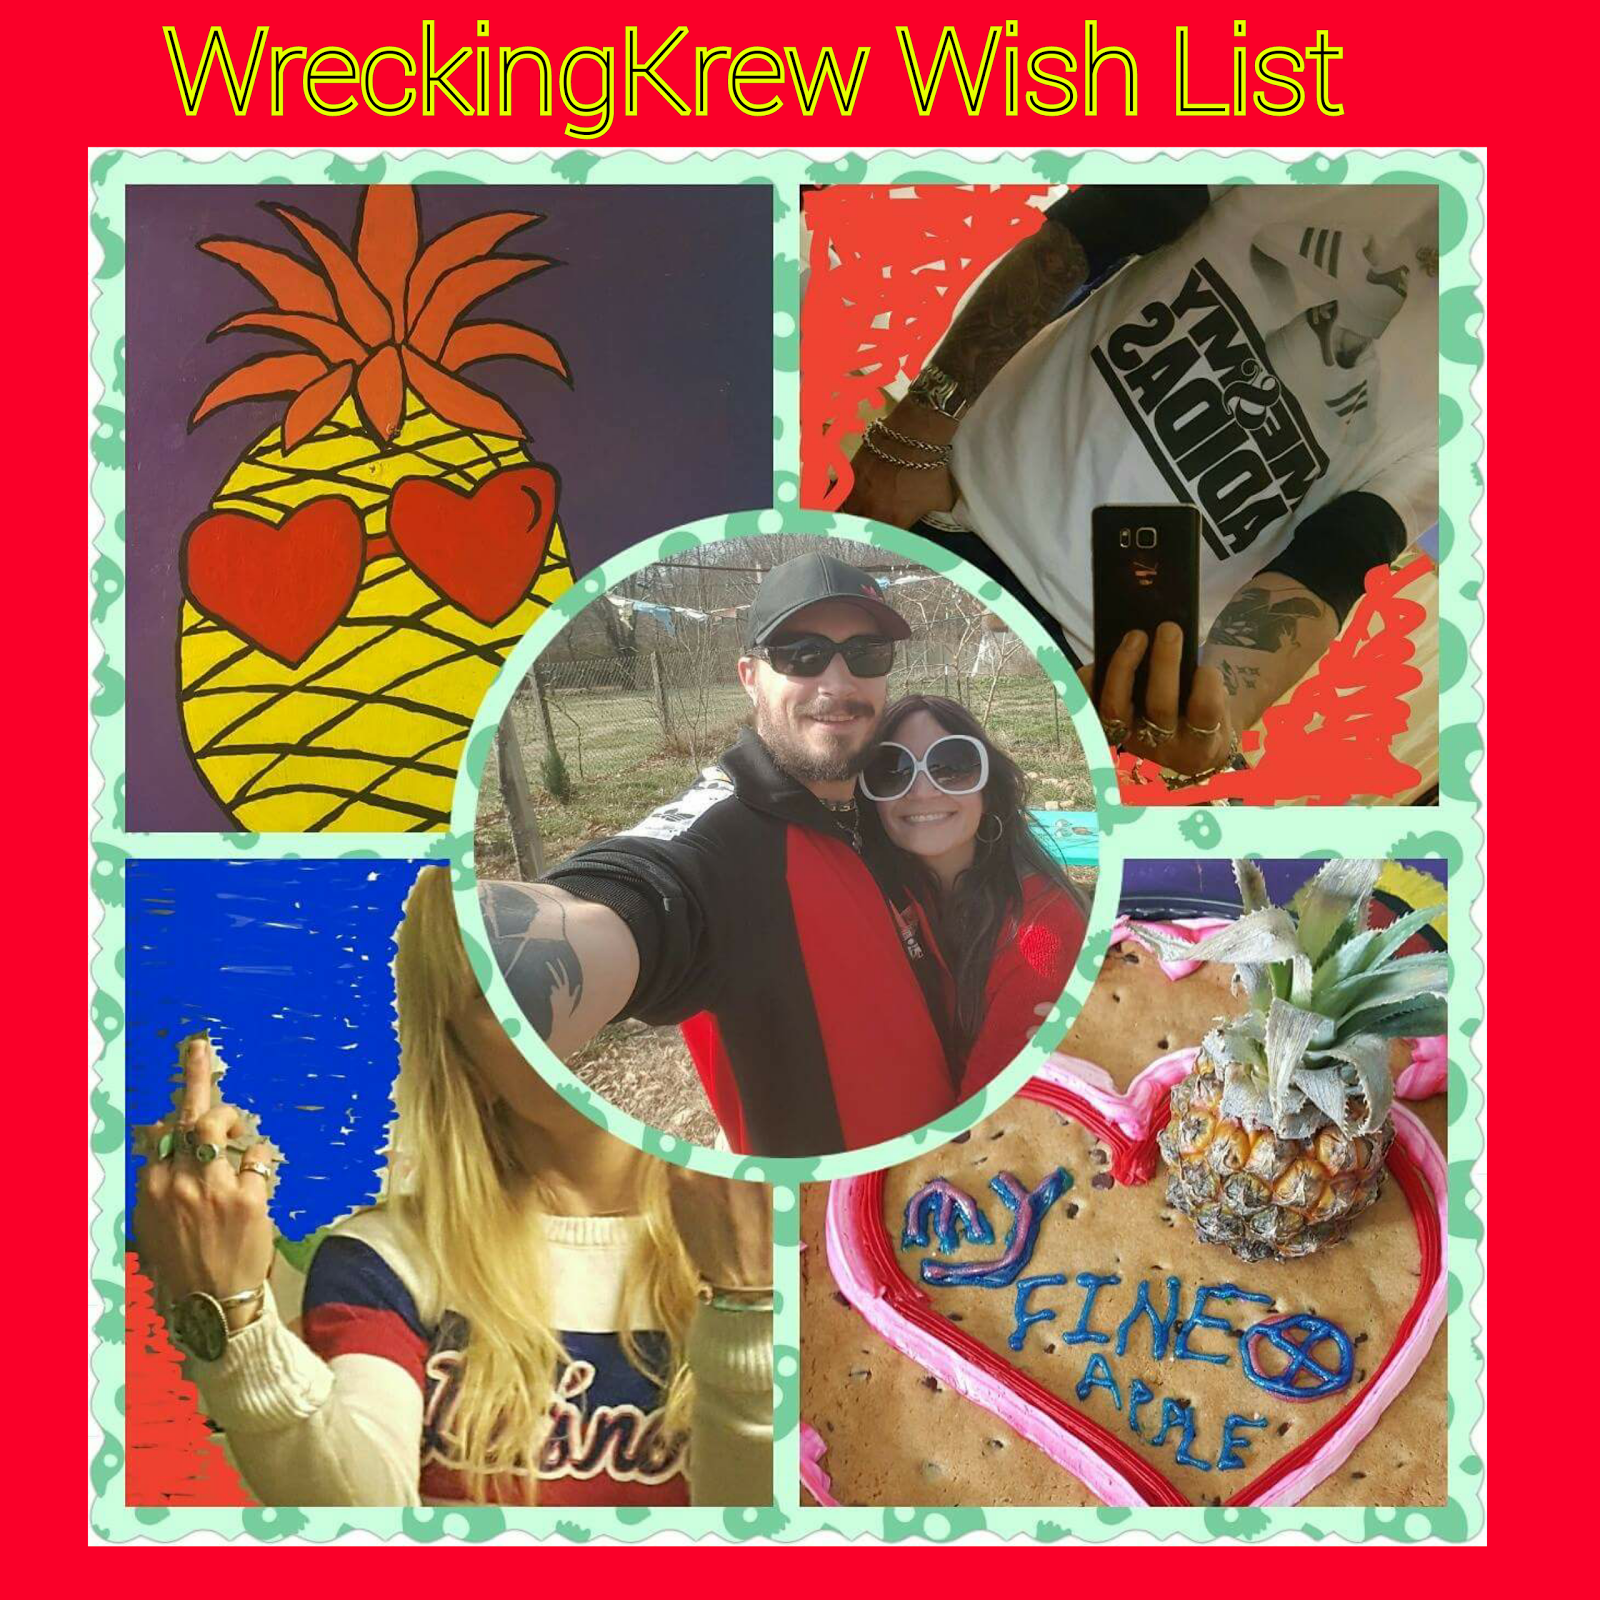 WreckingKrew Wish List